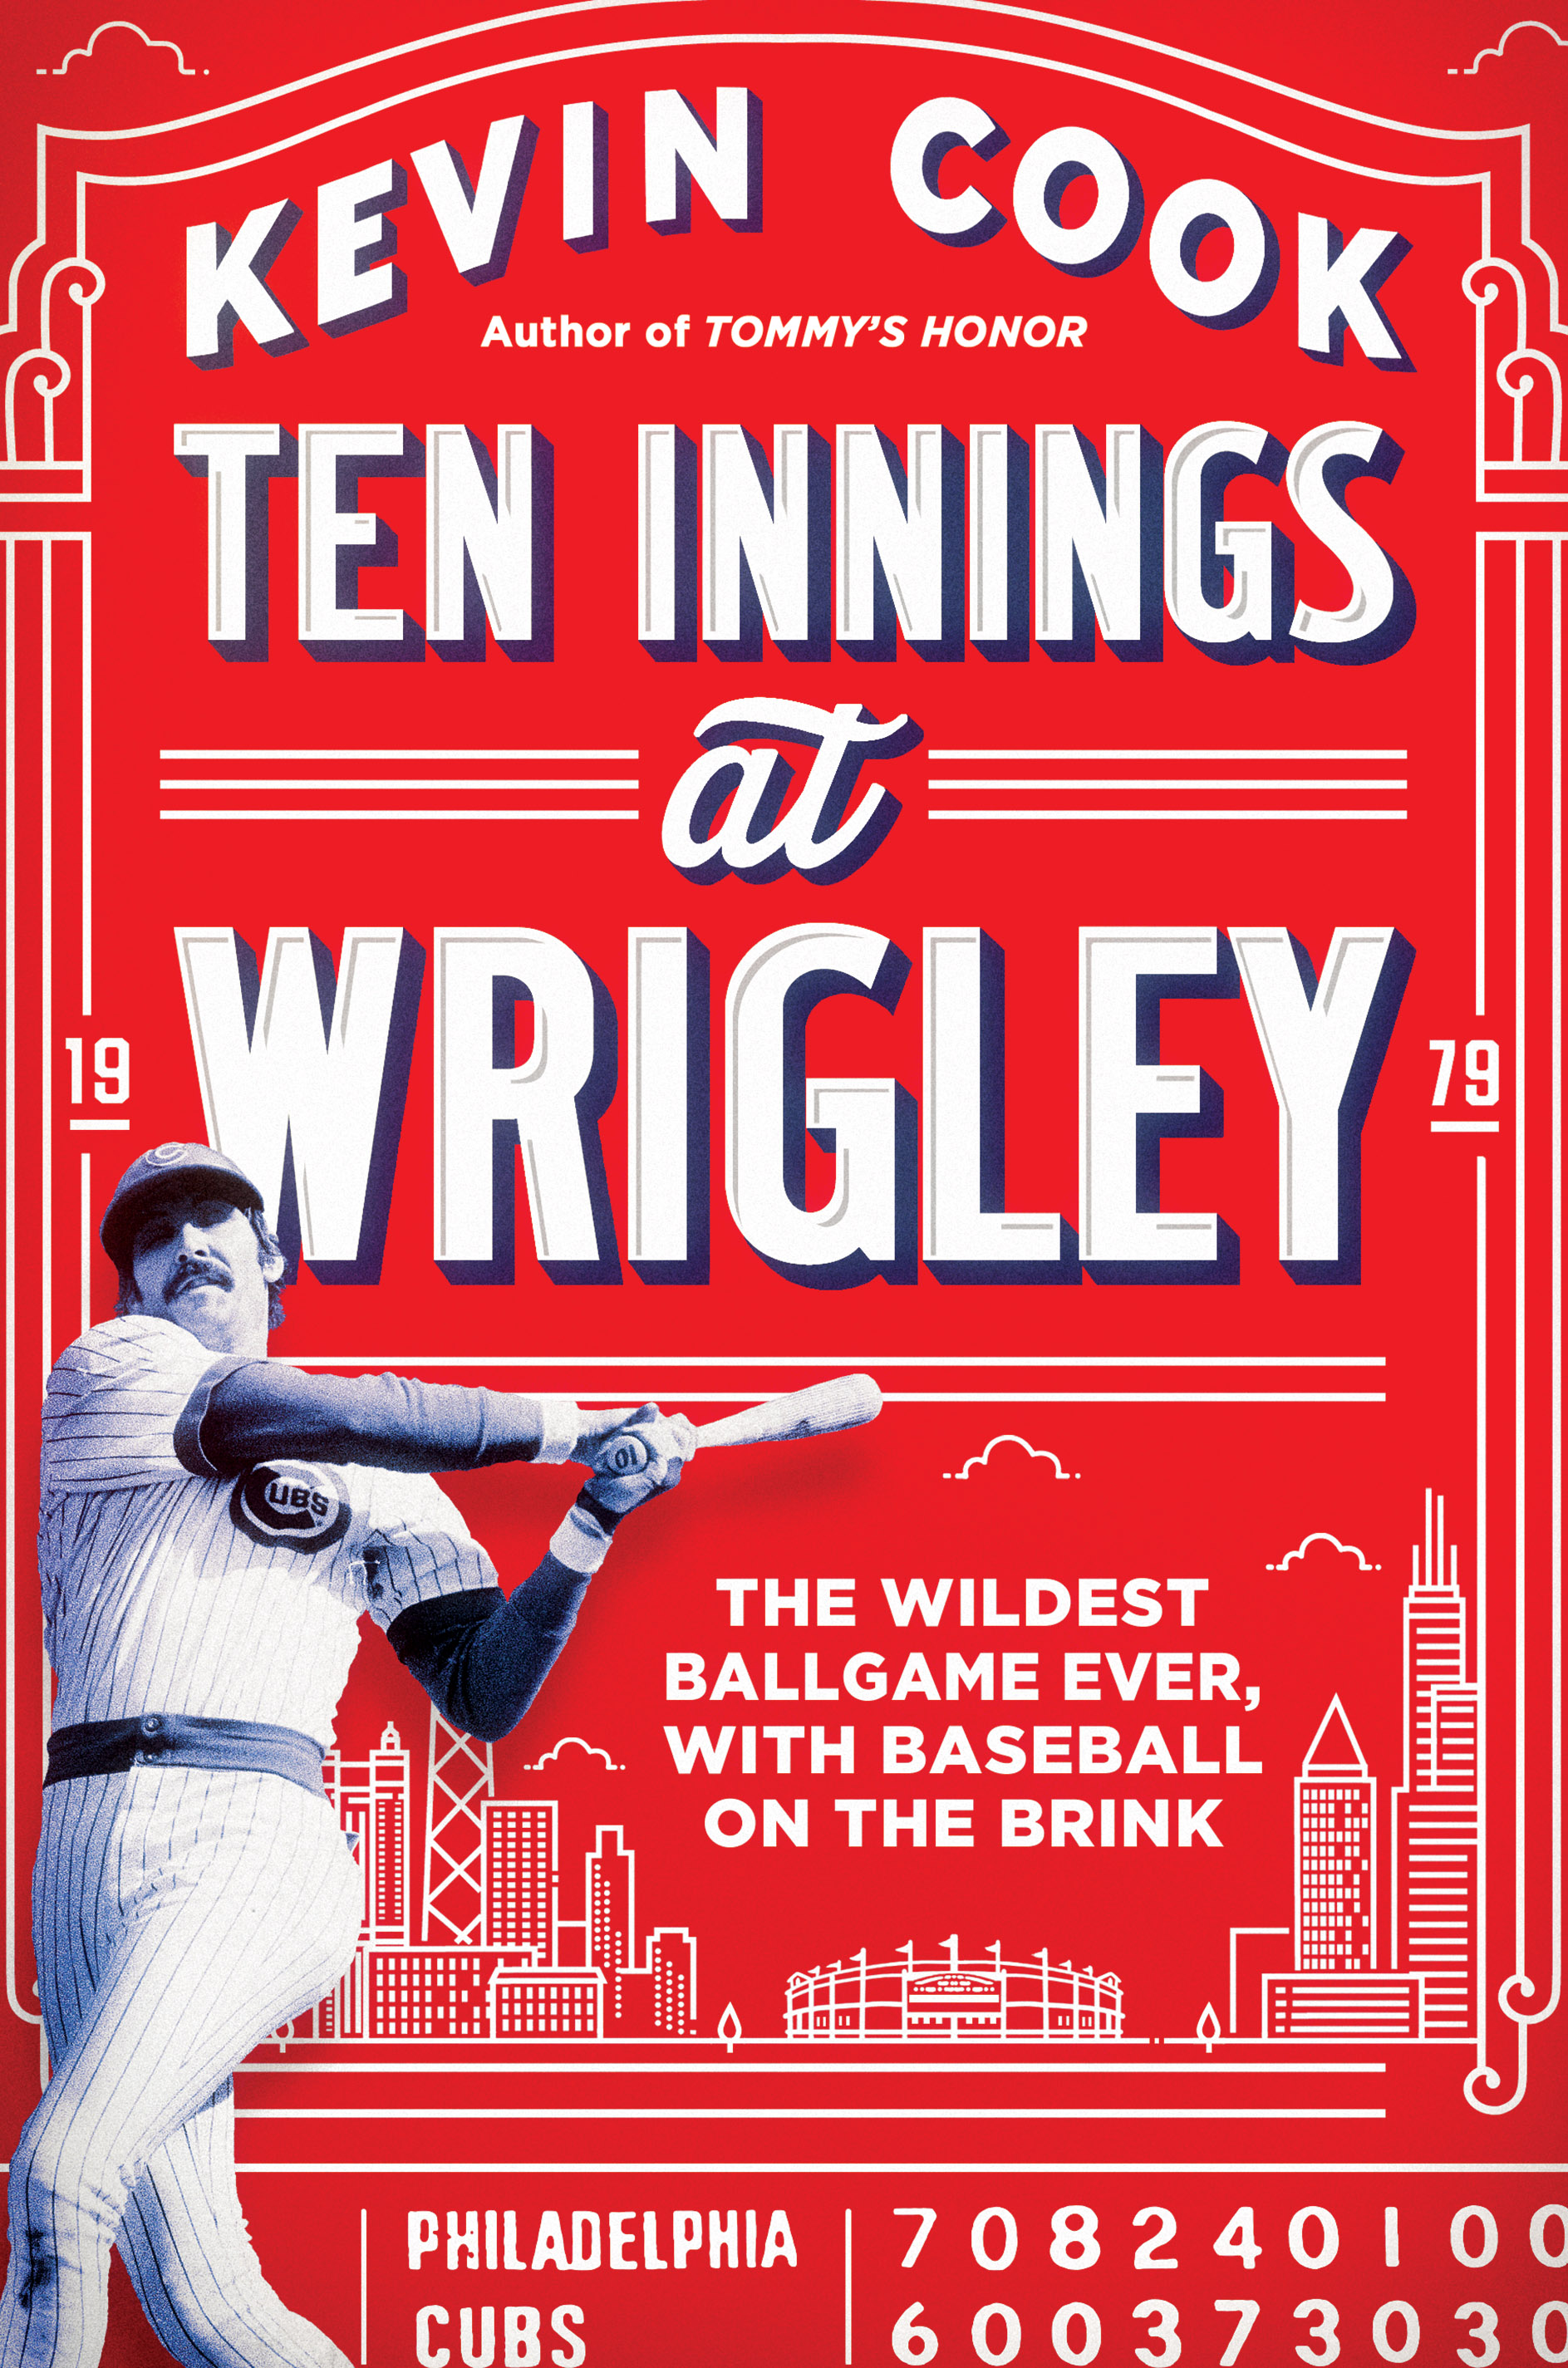 TENN INNINGS AT WRIGLEY by Kevin Cook